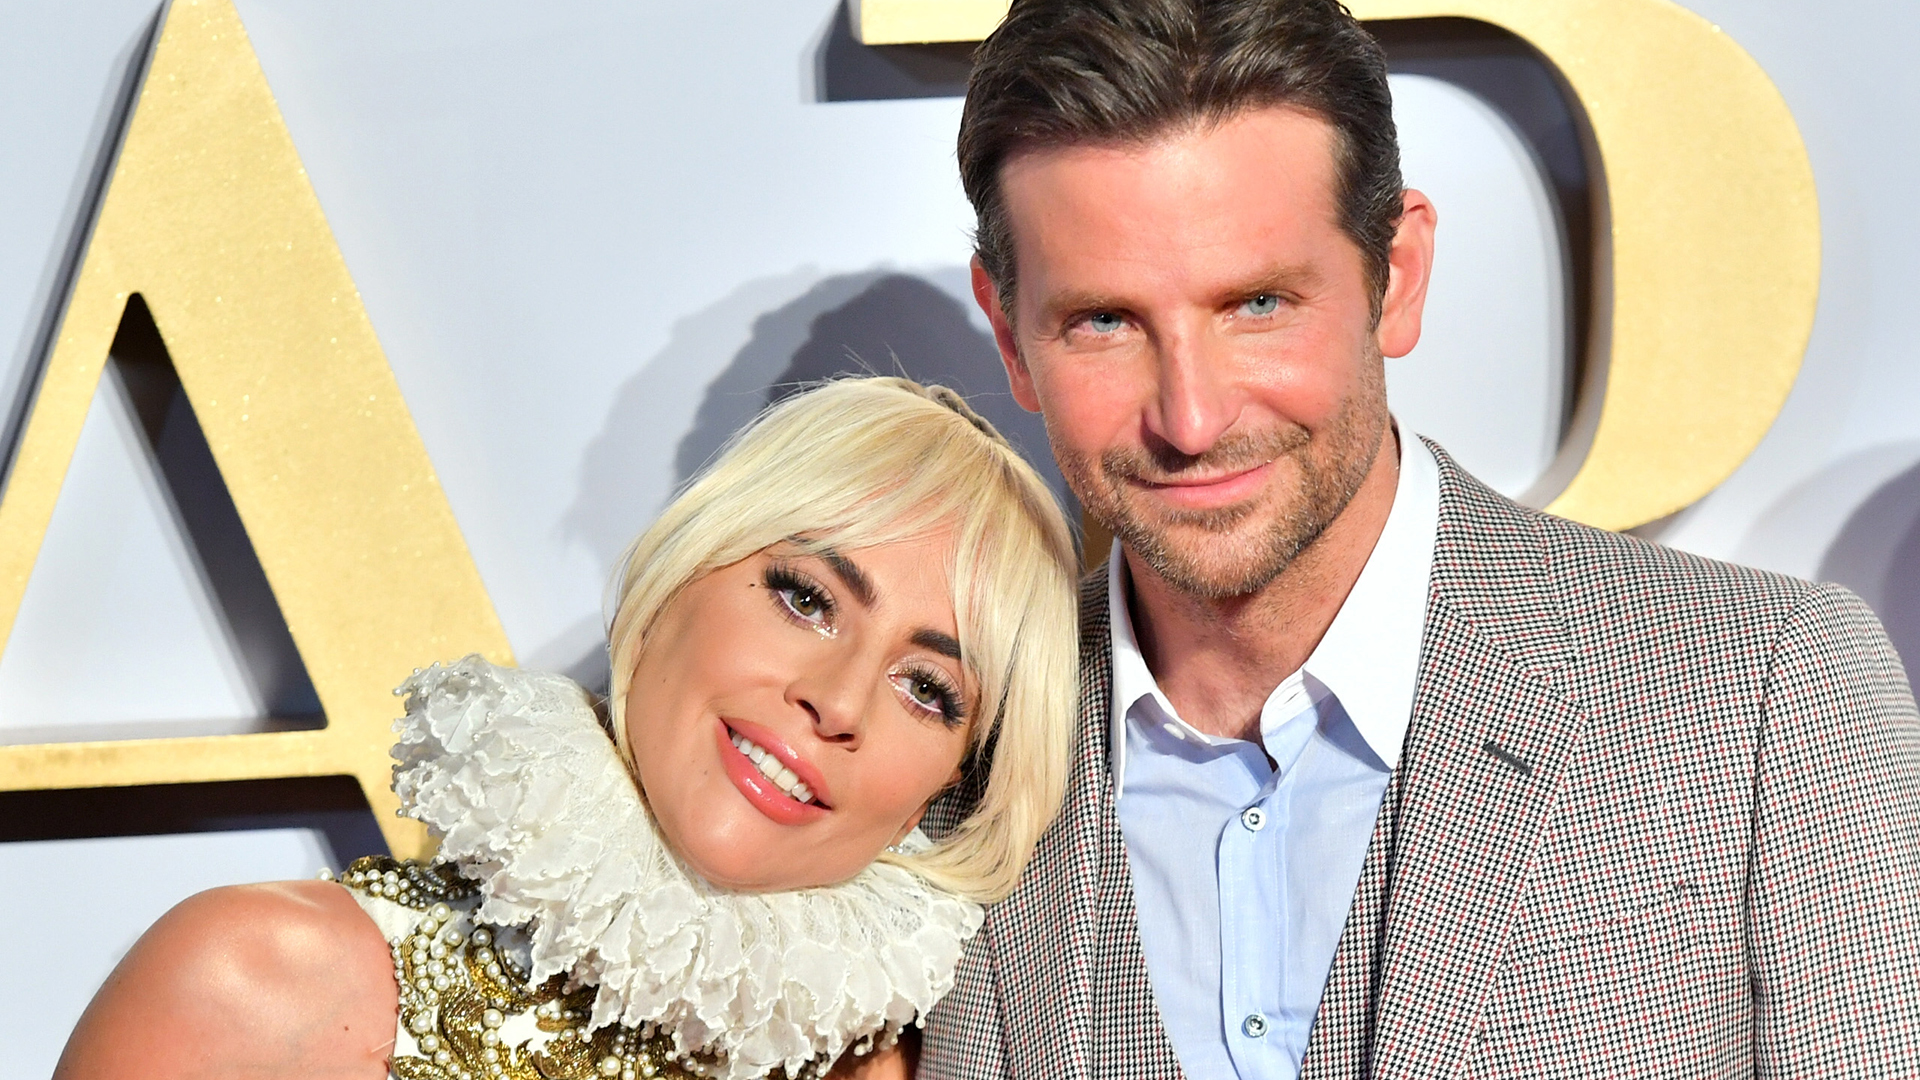 Bradley Cooper and Lady Gaga Rumors